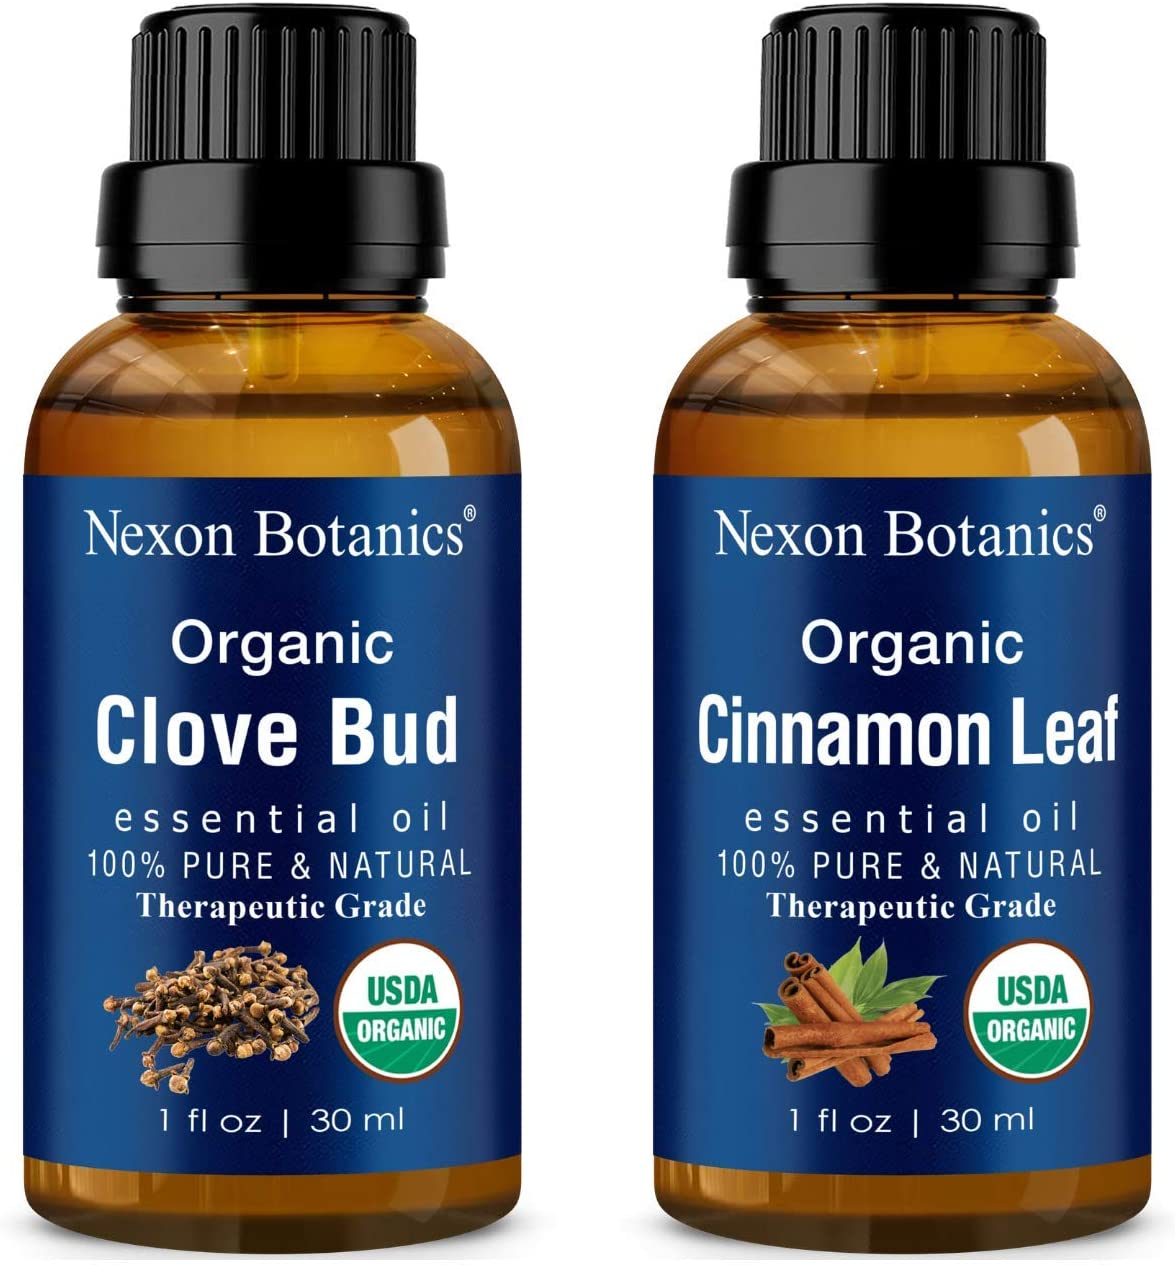 Organic Clove Bud Oil and Organic Cinnamon Oil - 100% Natural, Pure, Therapeutic Grade Essential Oils for Diffusers, Aromatherapy, Personal Care - Natural Mood Enhancers - Bundle by Nexon Botanics